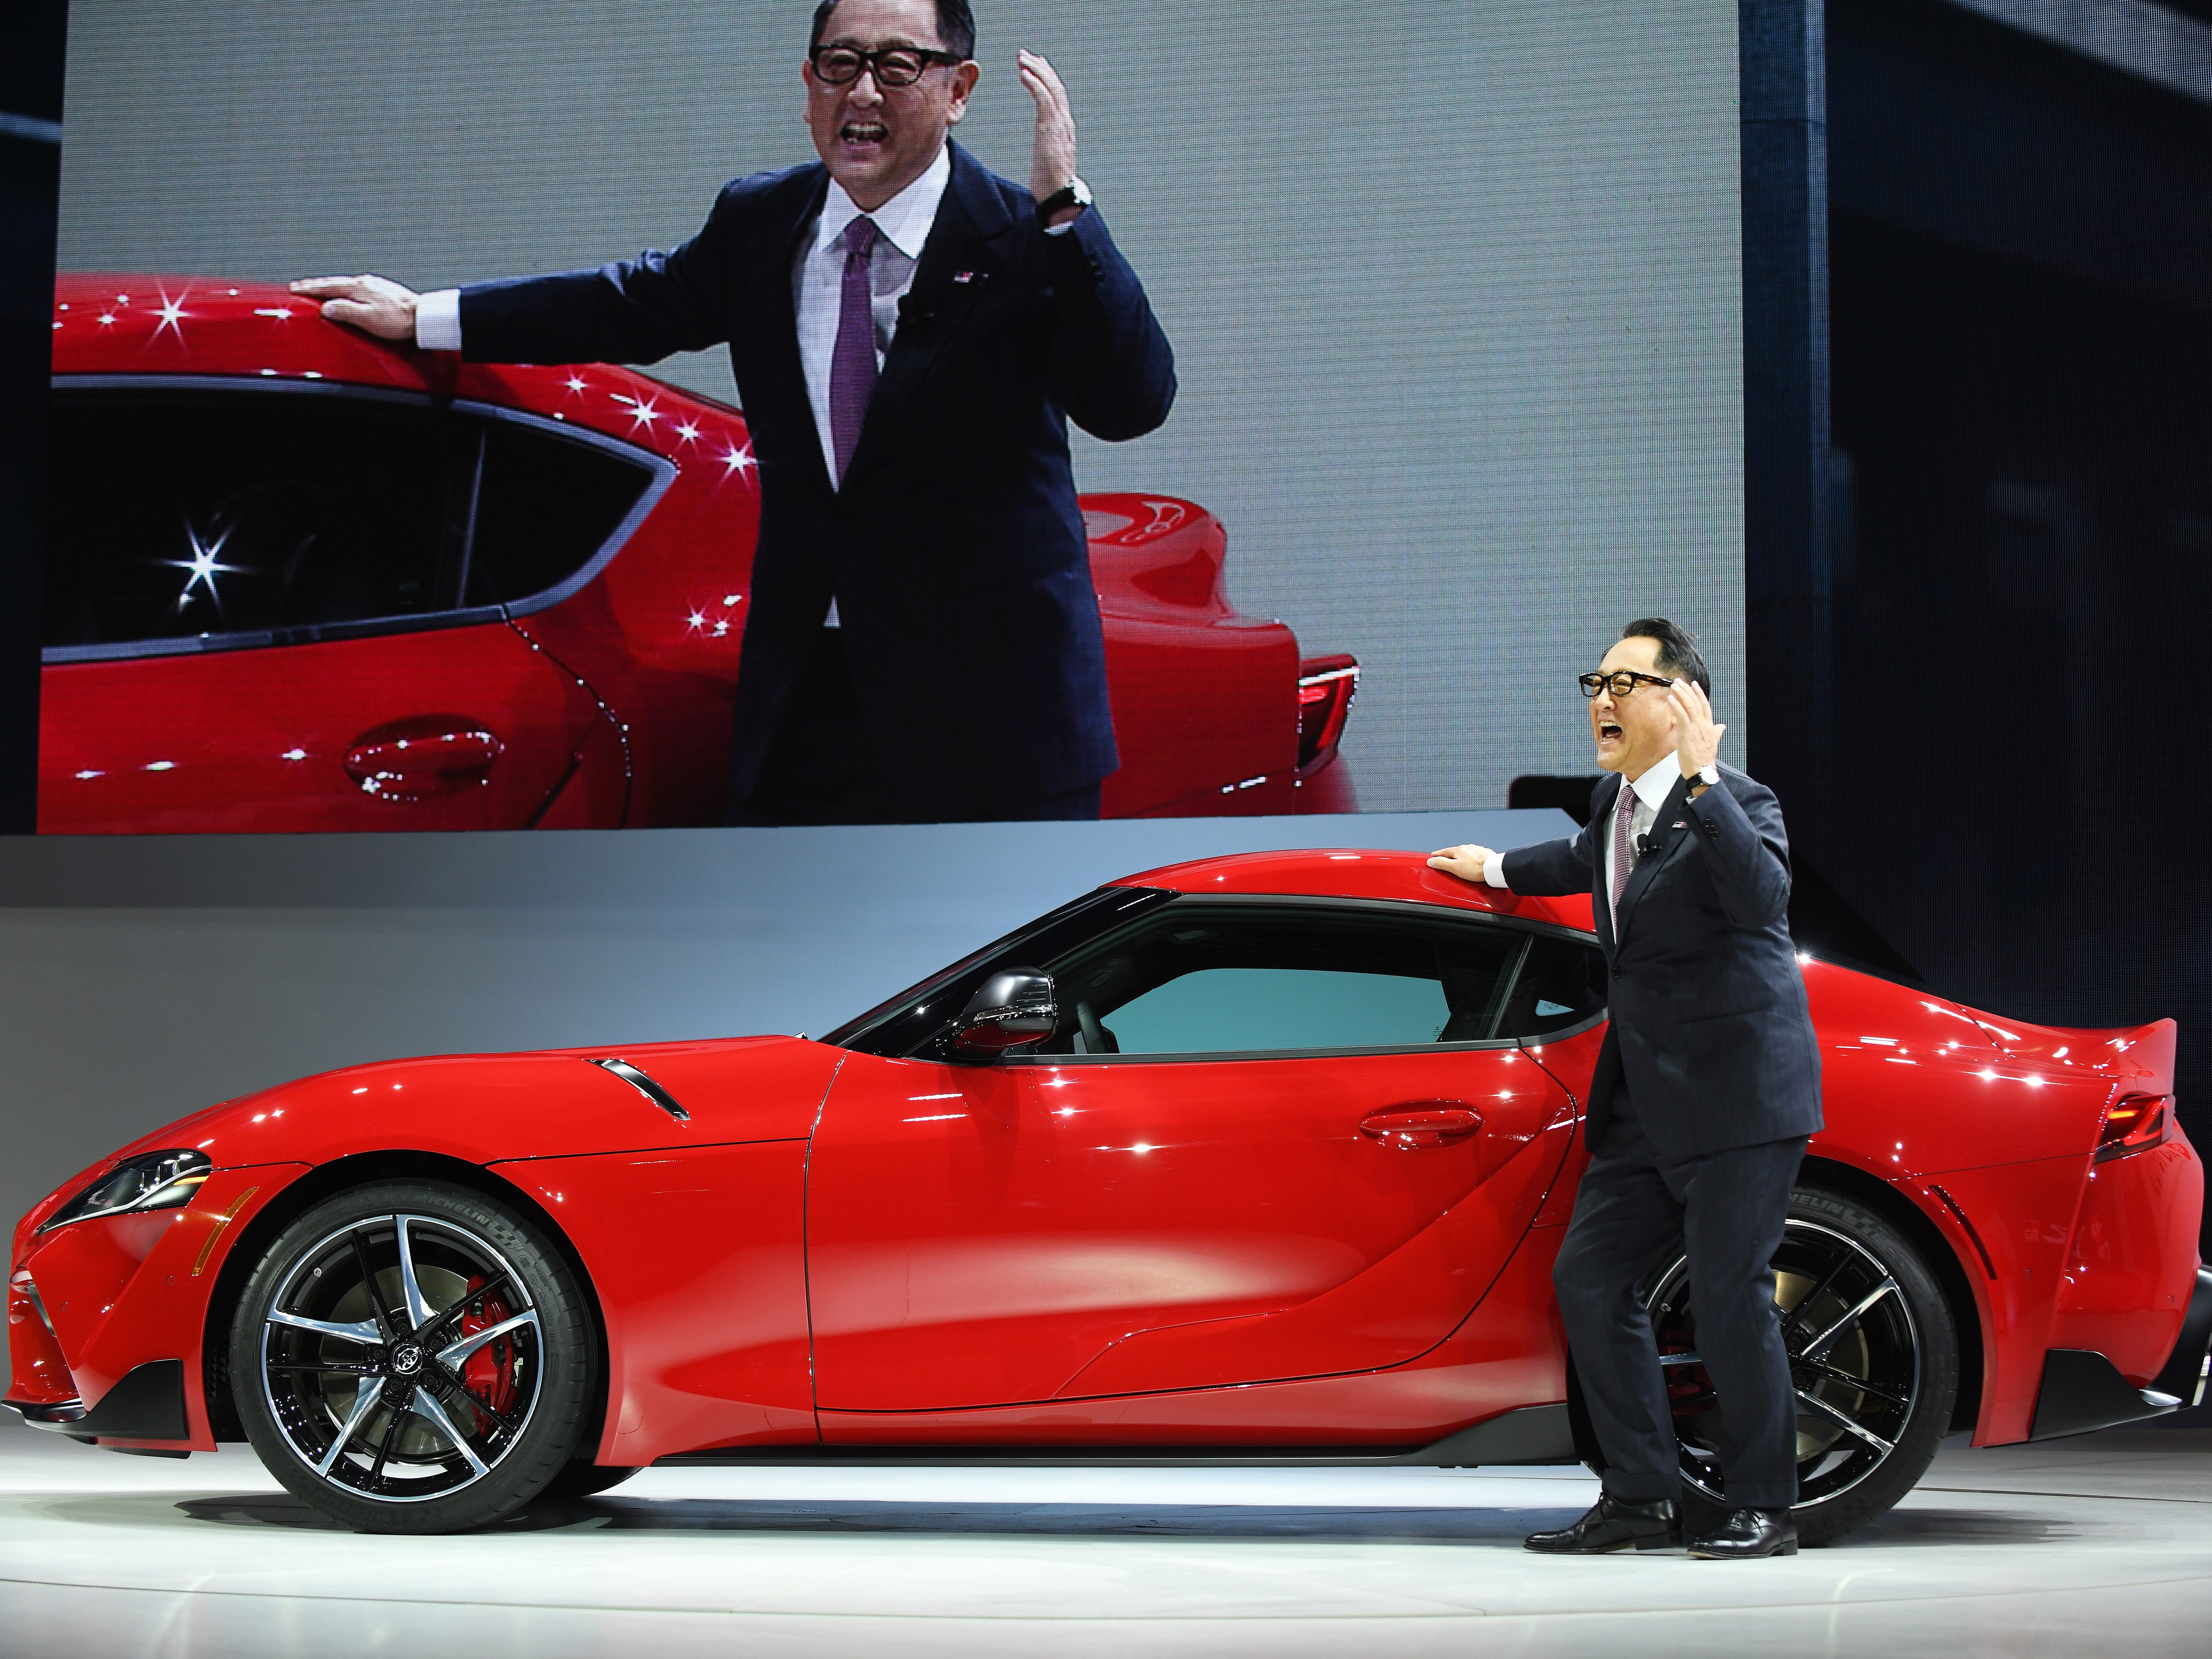 Toyota's President Akio Toyoda is very excited about the 2020 Toyota Supra at the Detroit auto show.